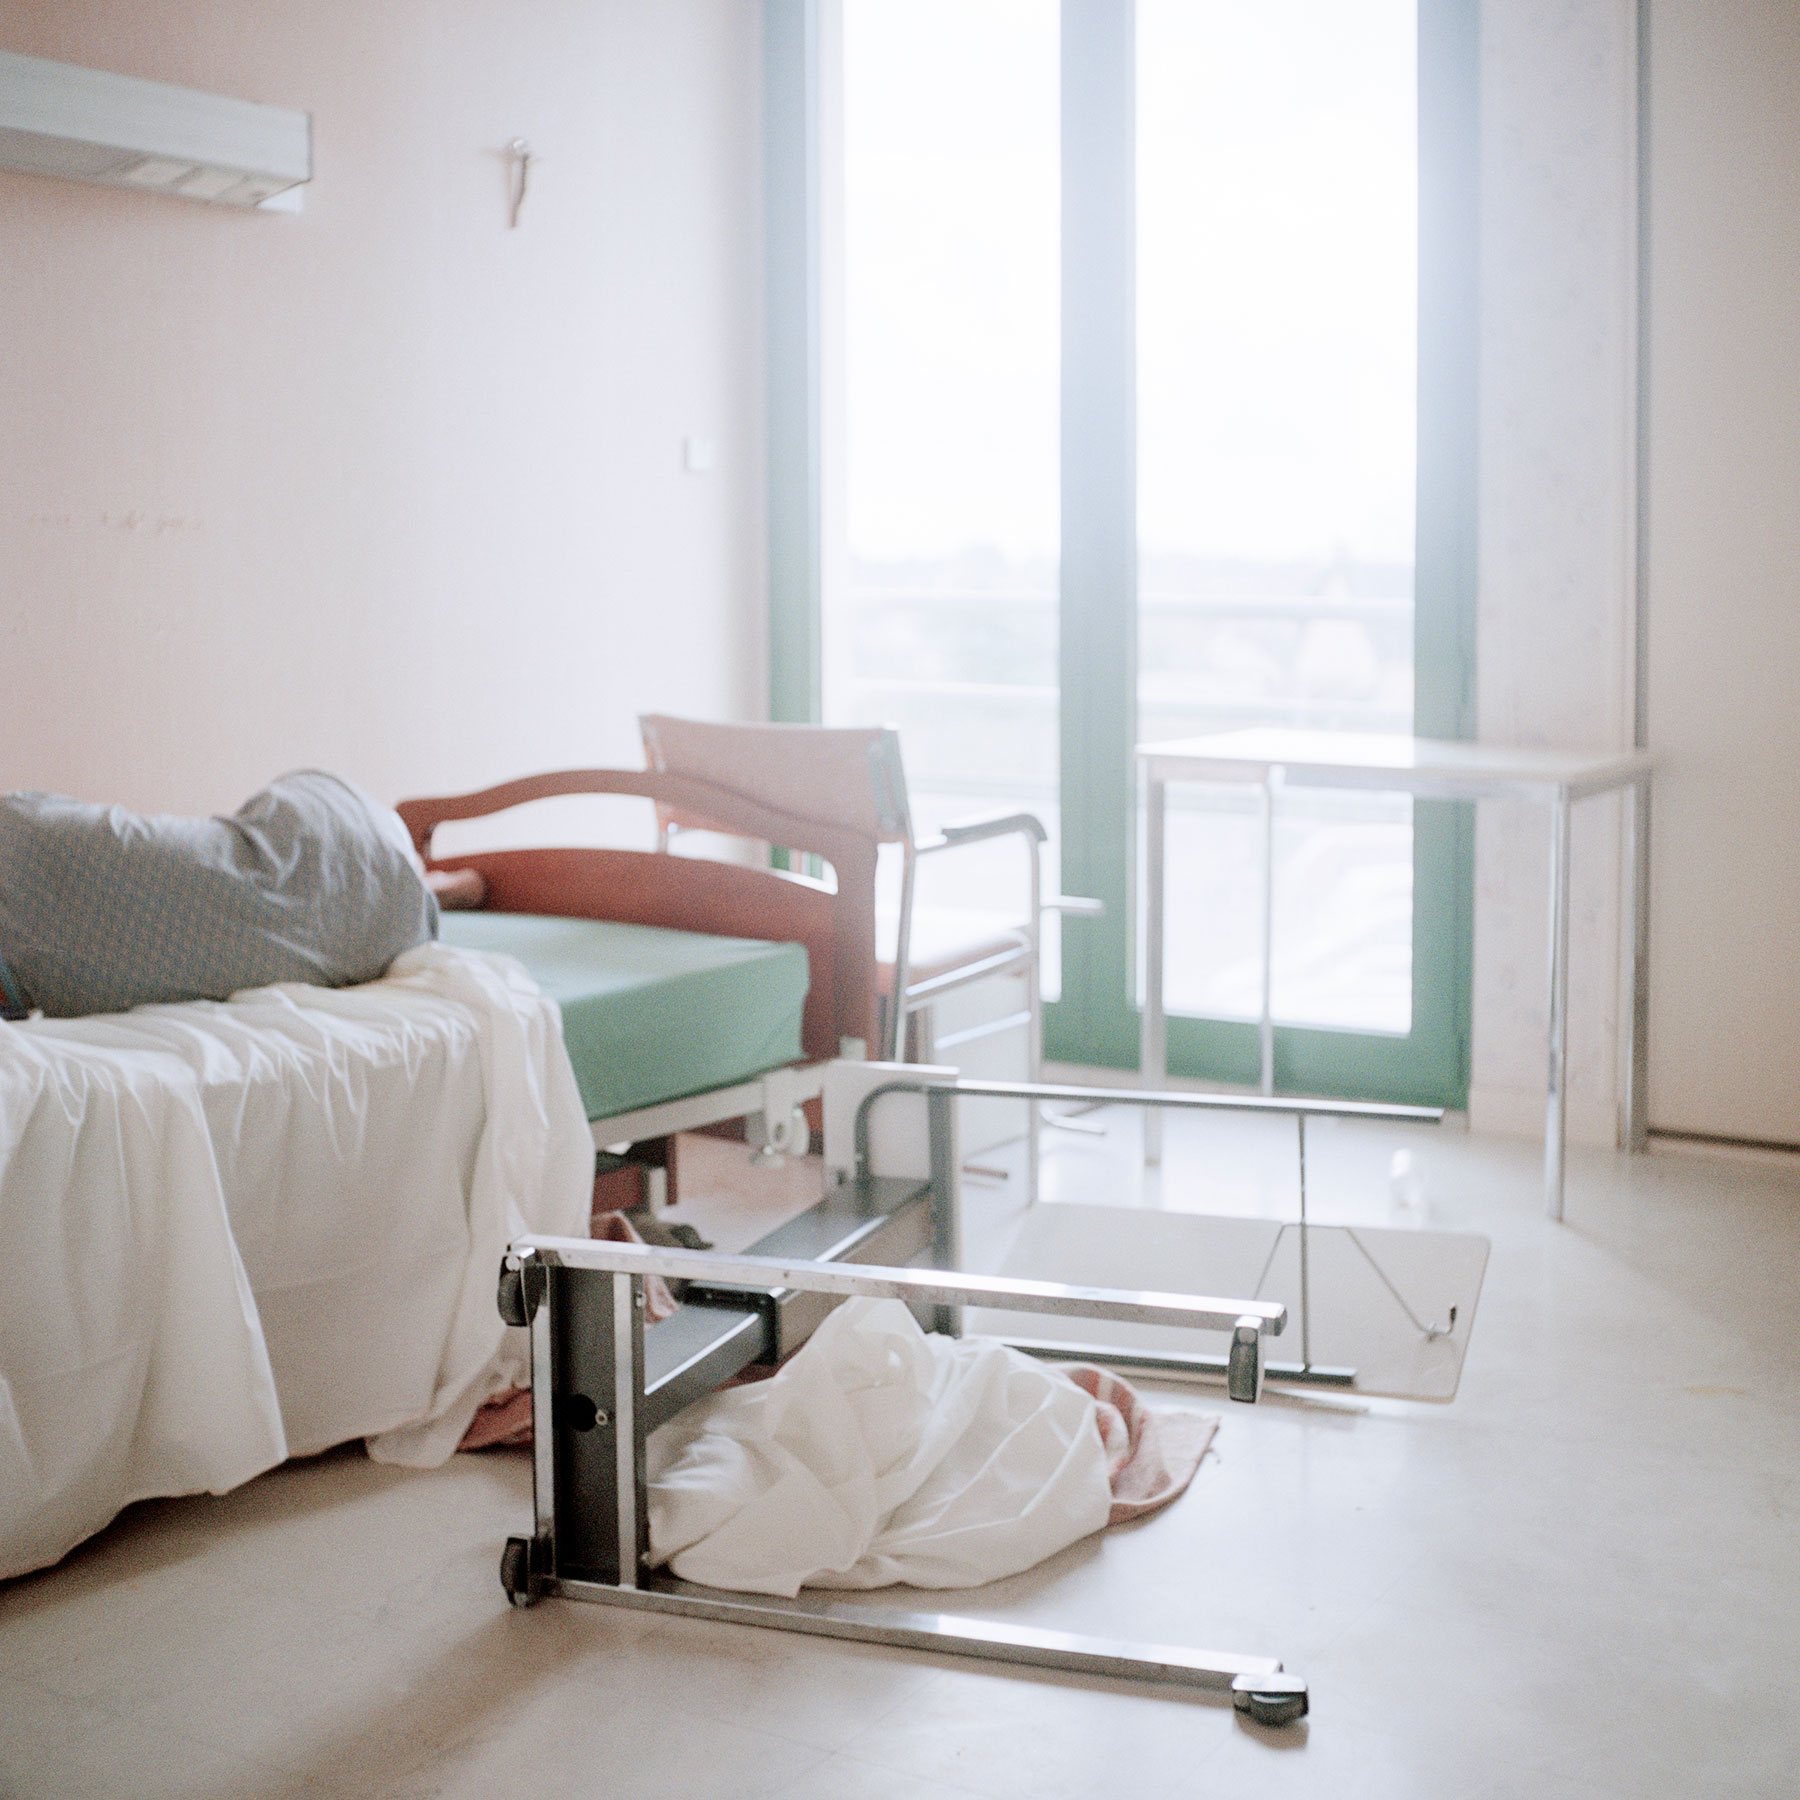 Seven A.M. in a resident's room after a long night in the ward. Alzheimer's disease can cause behaviour difficulties such as aggressiveness, eating disorders, increased anxiety or depressive tendencies.